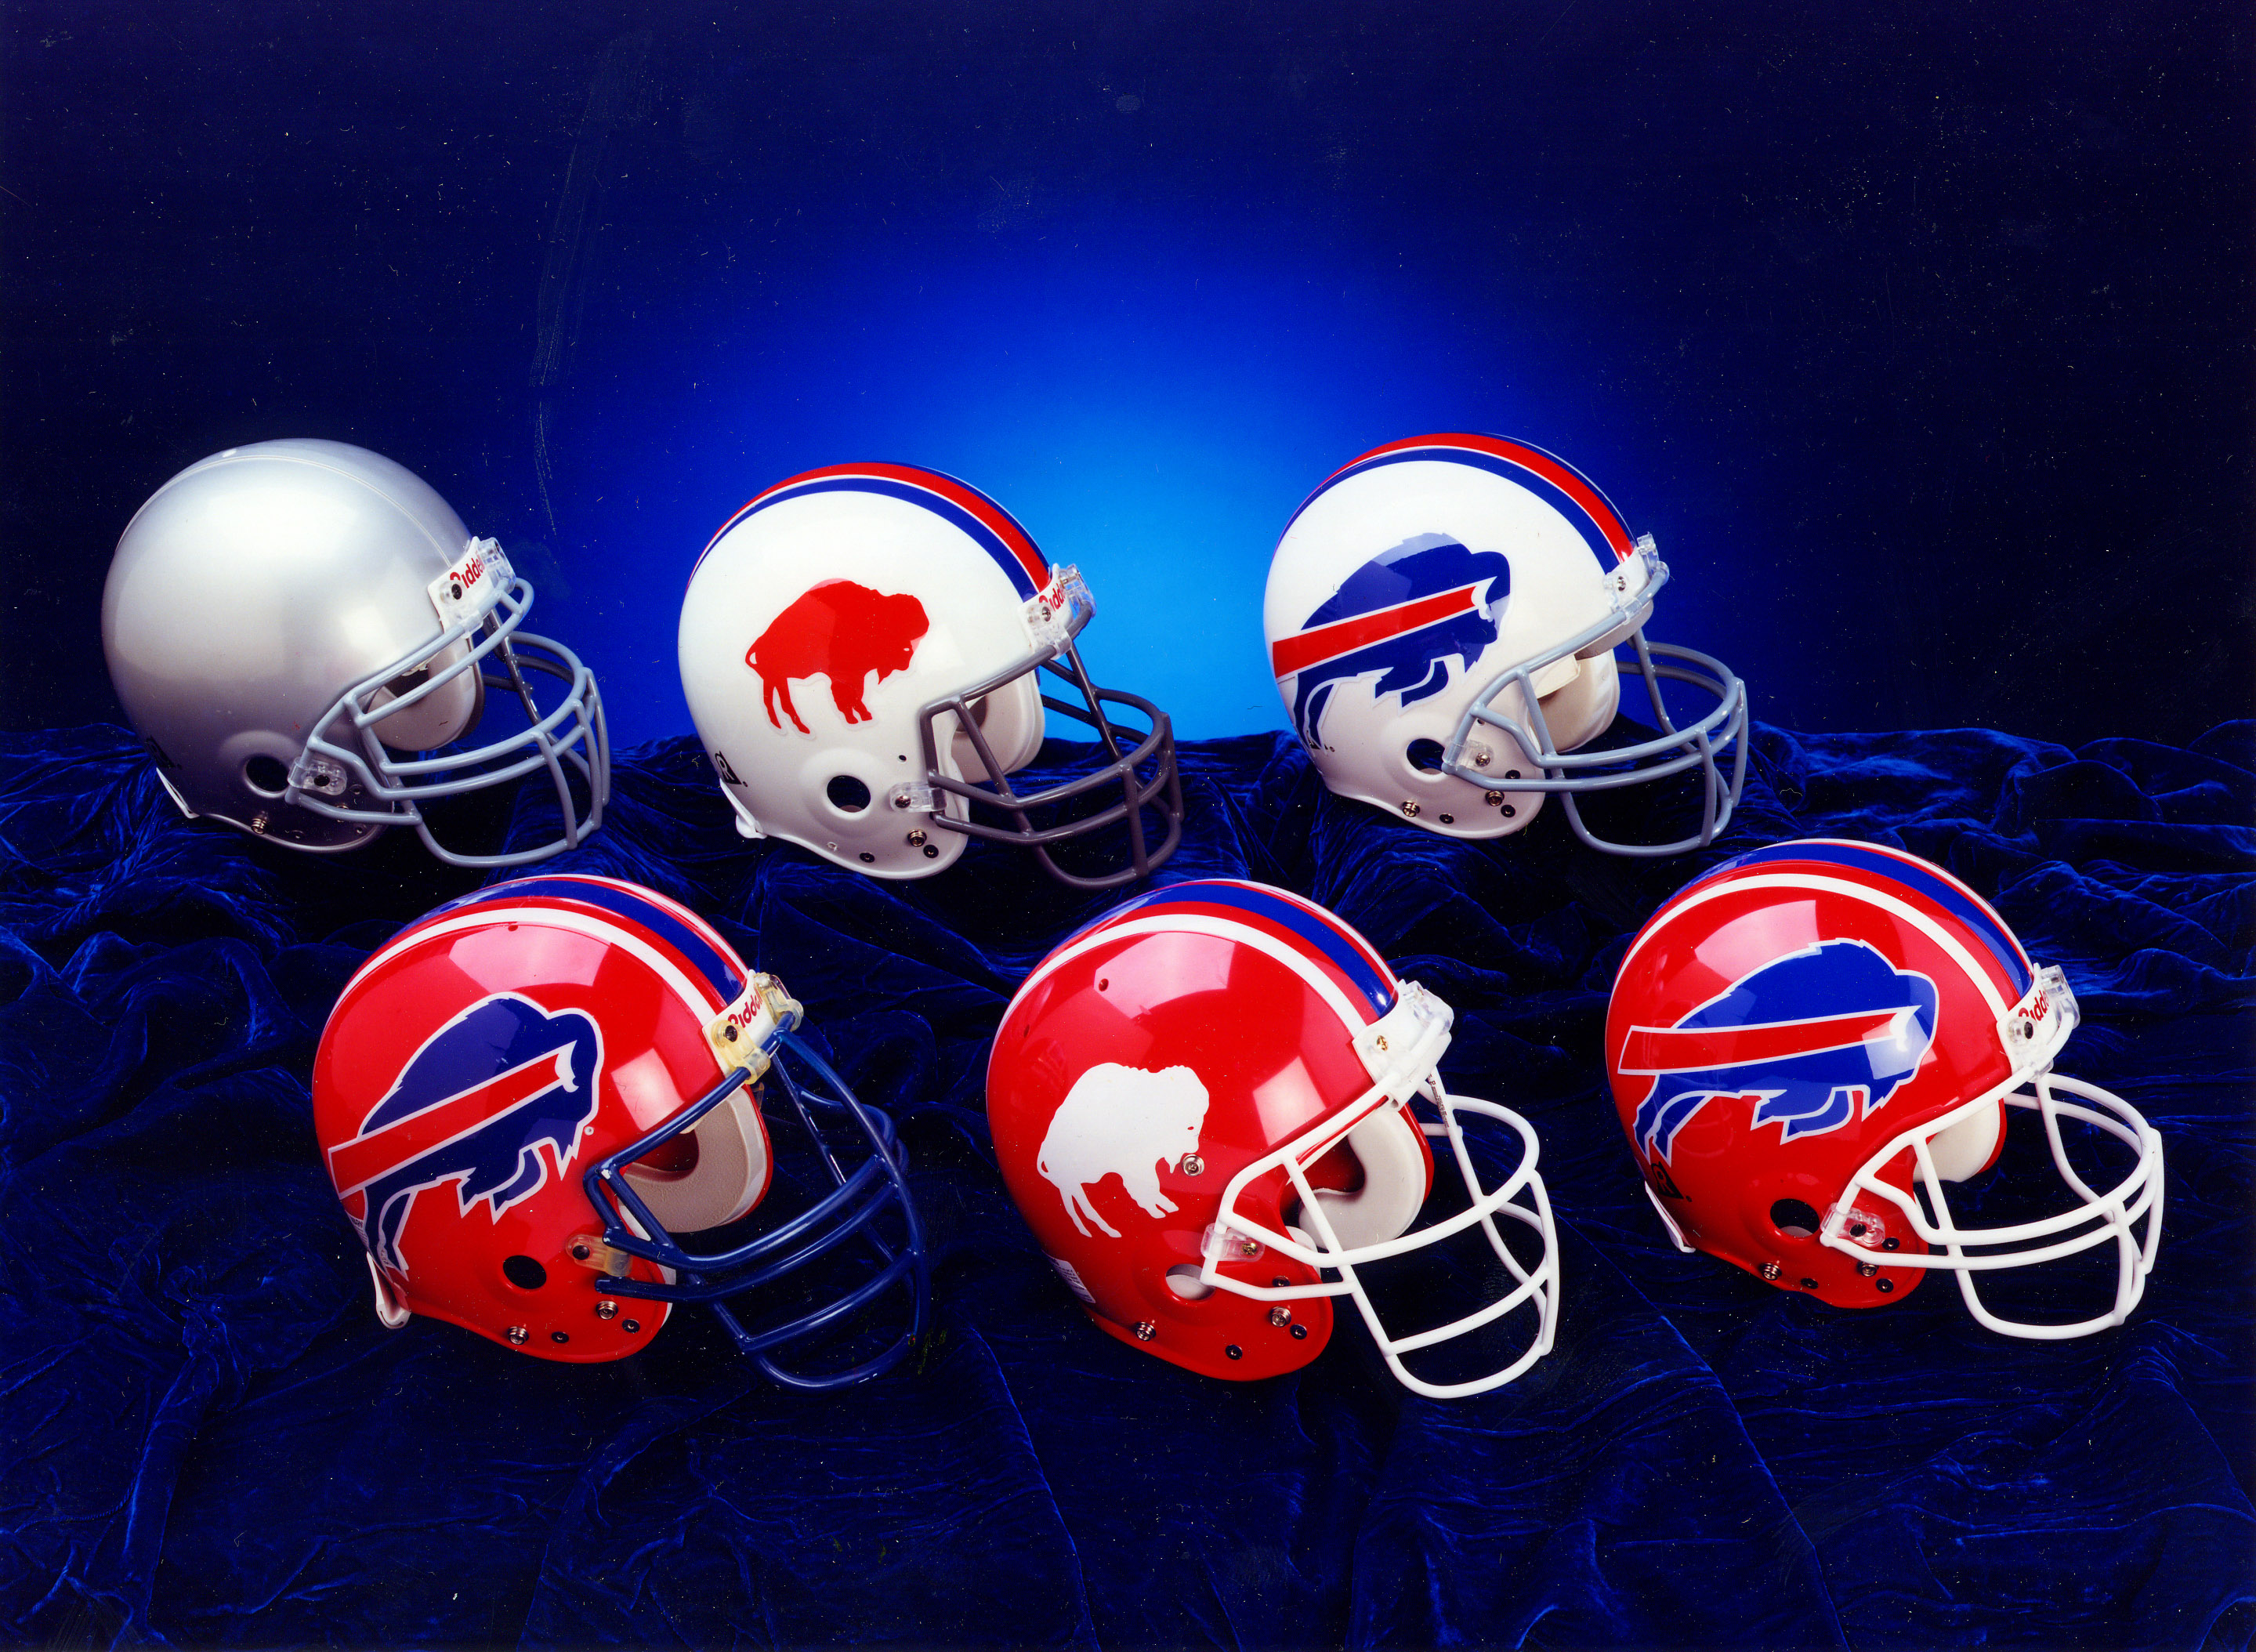 the bills helmets - Buffalo Bills Helmet Coloring Page